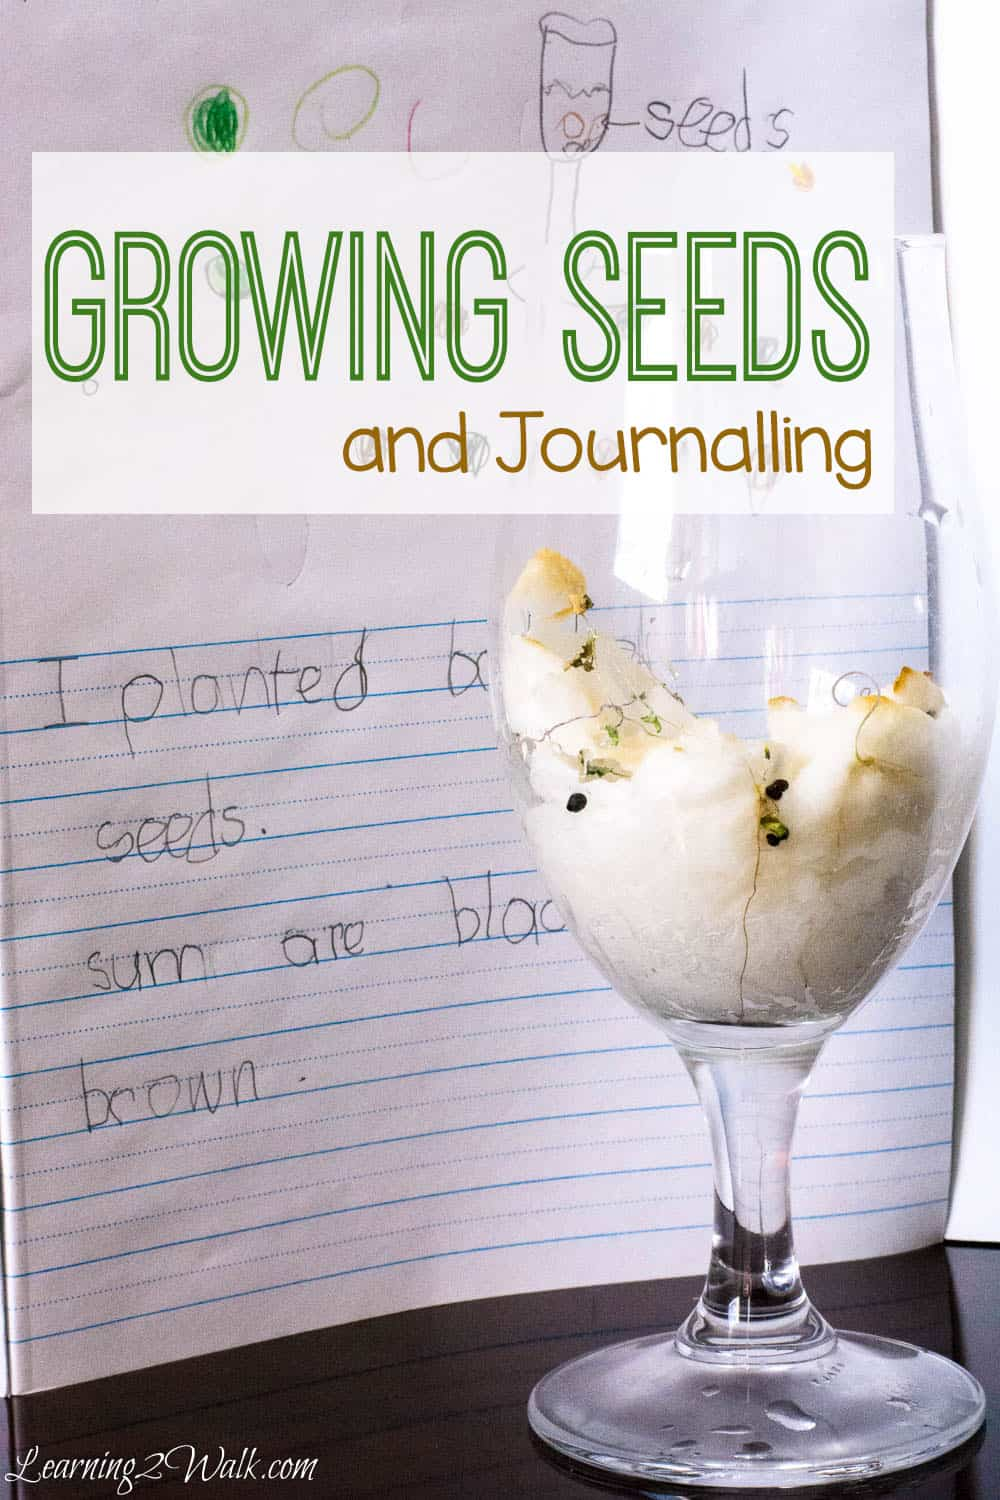 Allow your little scientist to plant observe and journal broccoli seeds while they grow- a fun seed science experiment for kids